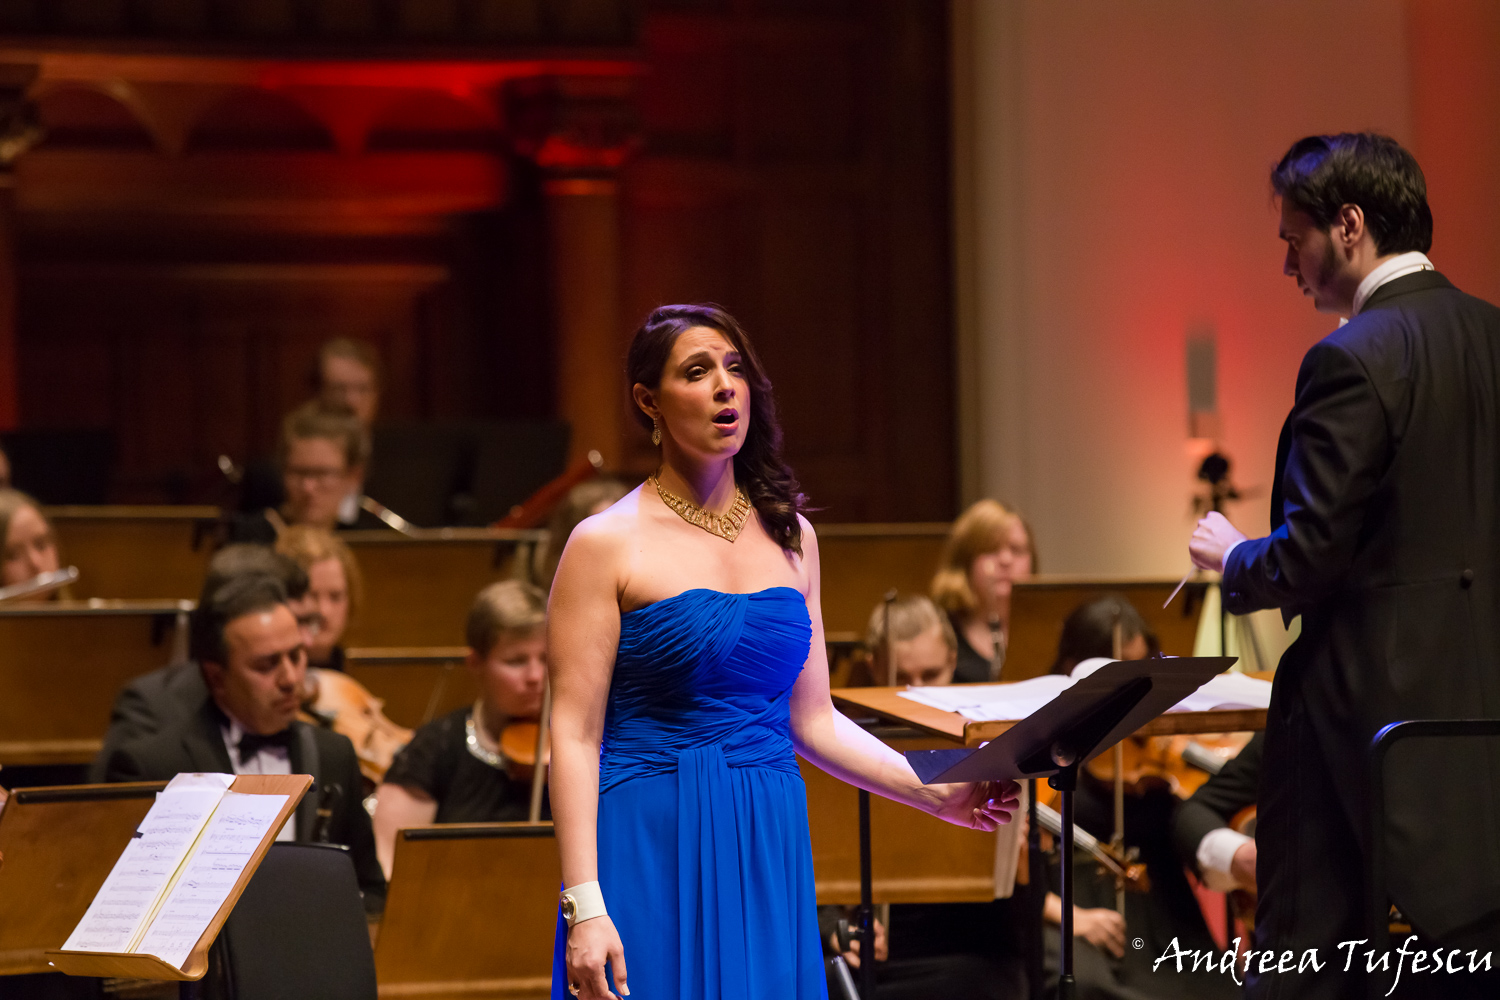 Light of Music concert at the Cadogan Hall (January 2016)